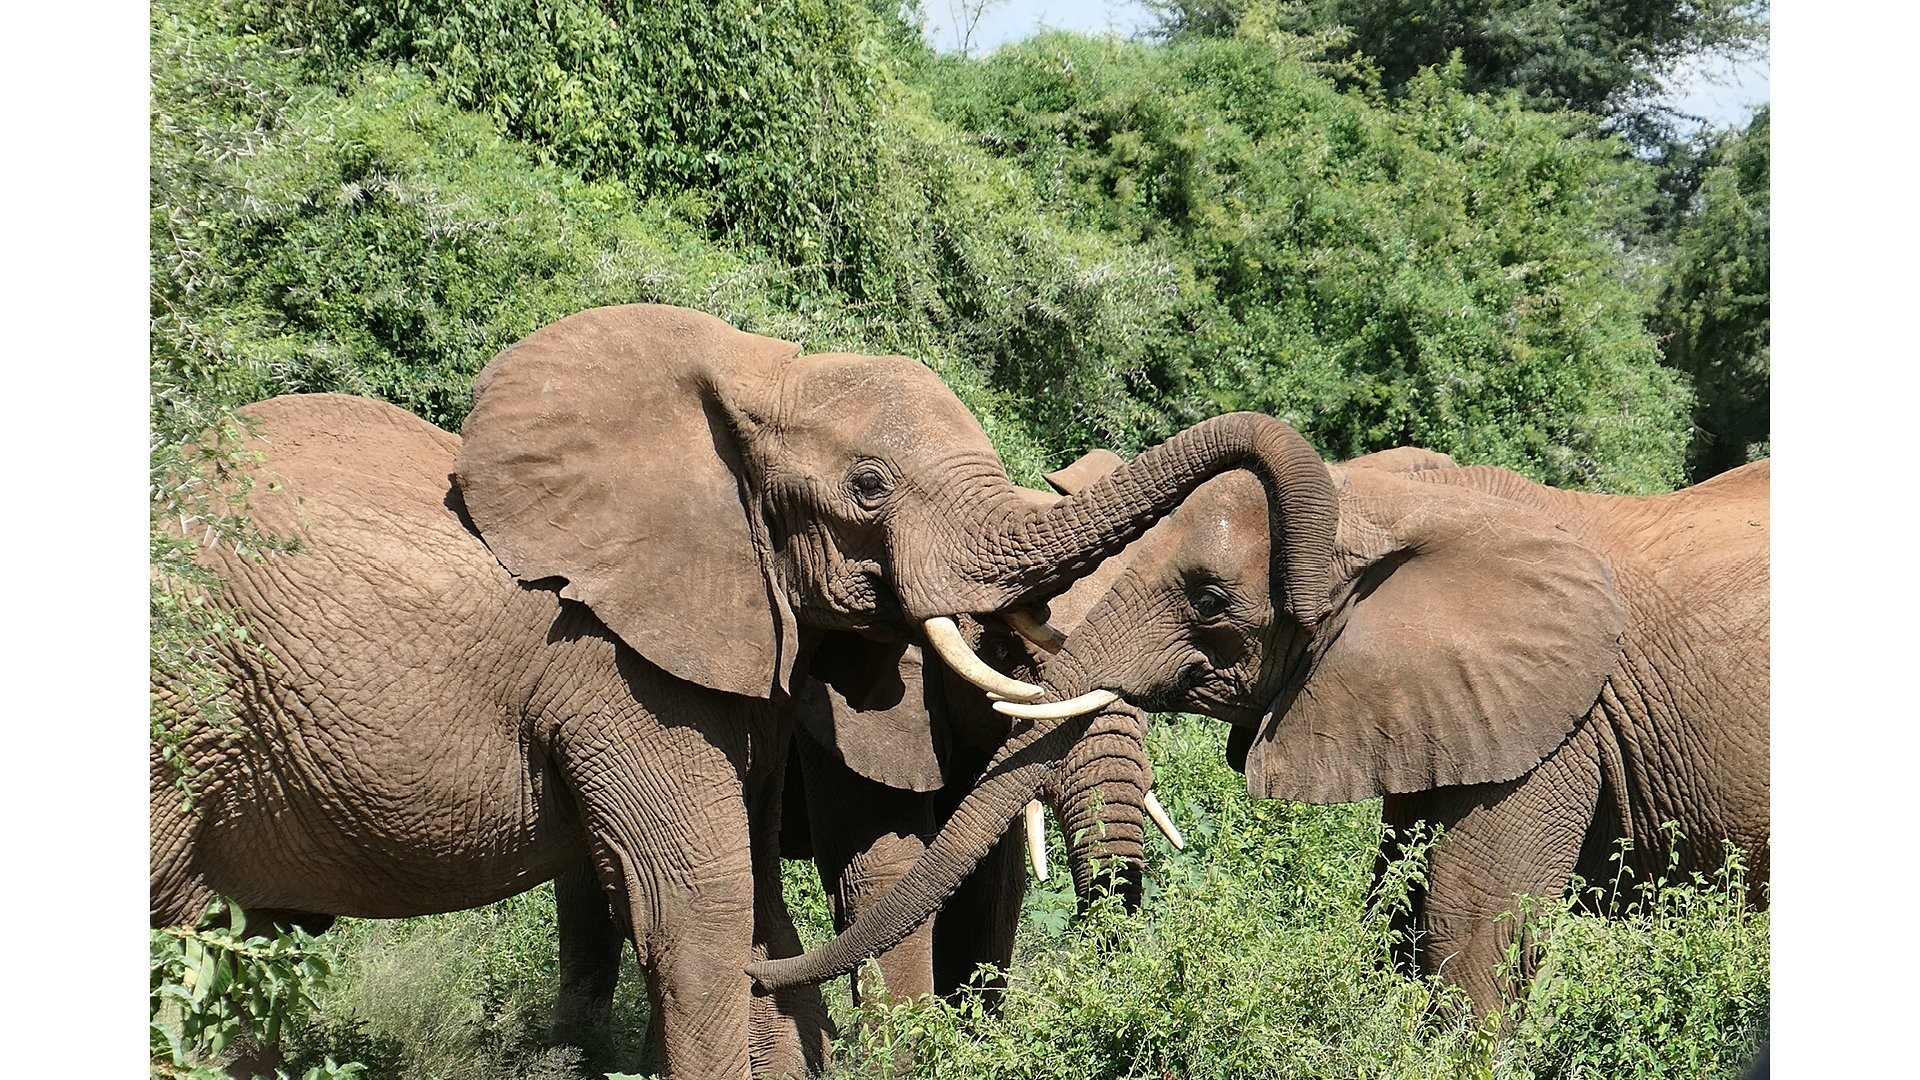 Who Will Save the Elephants?